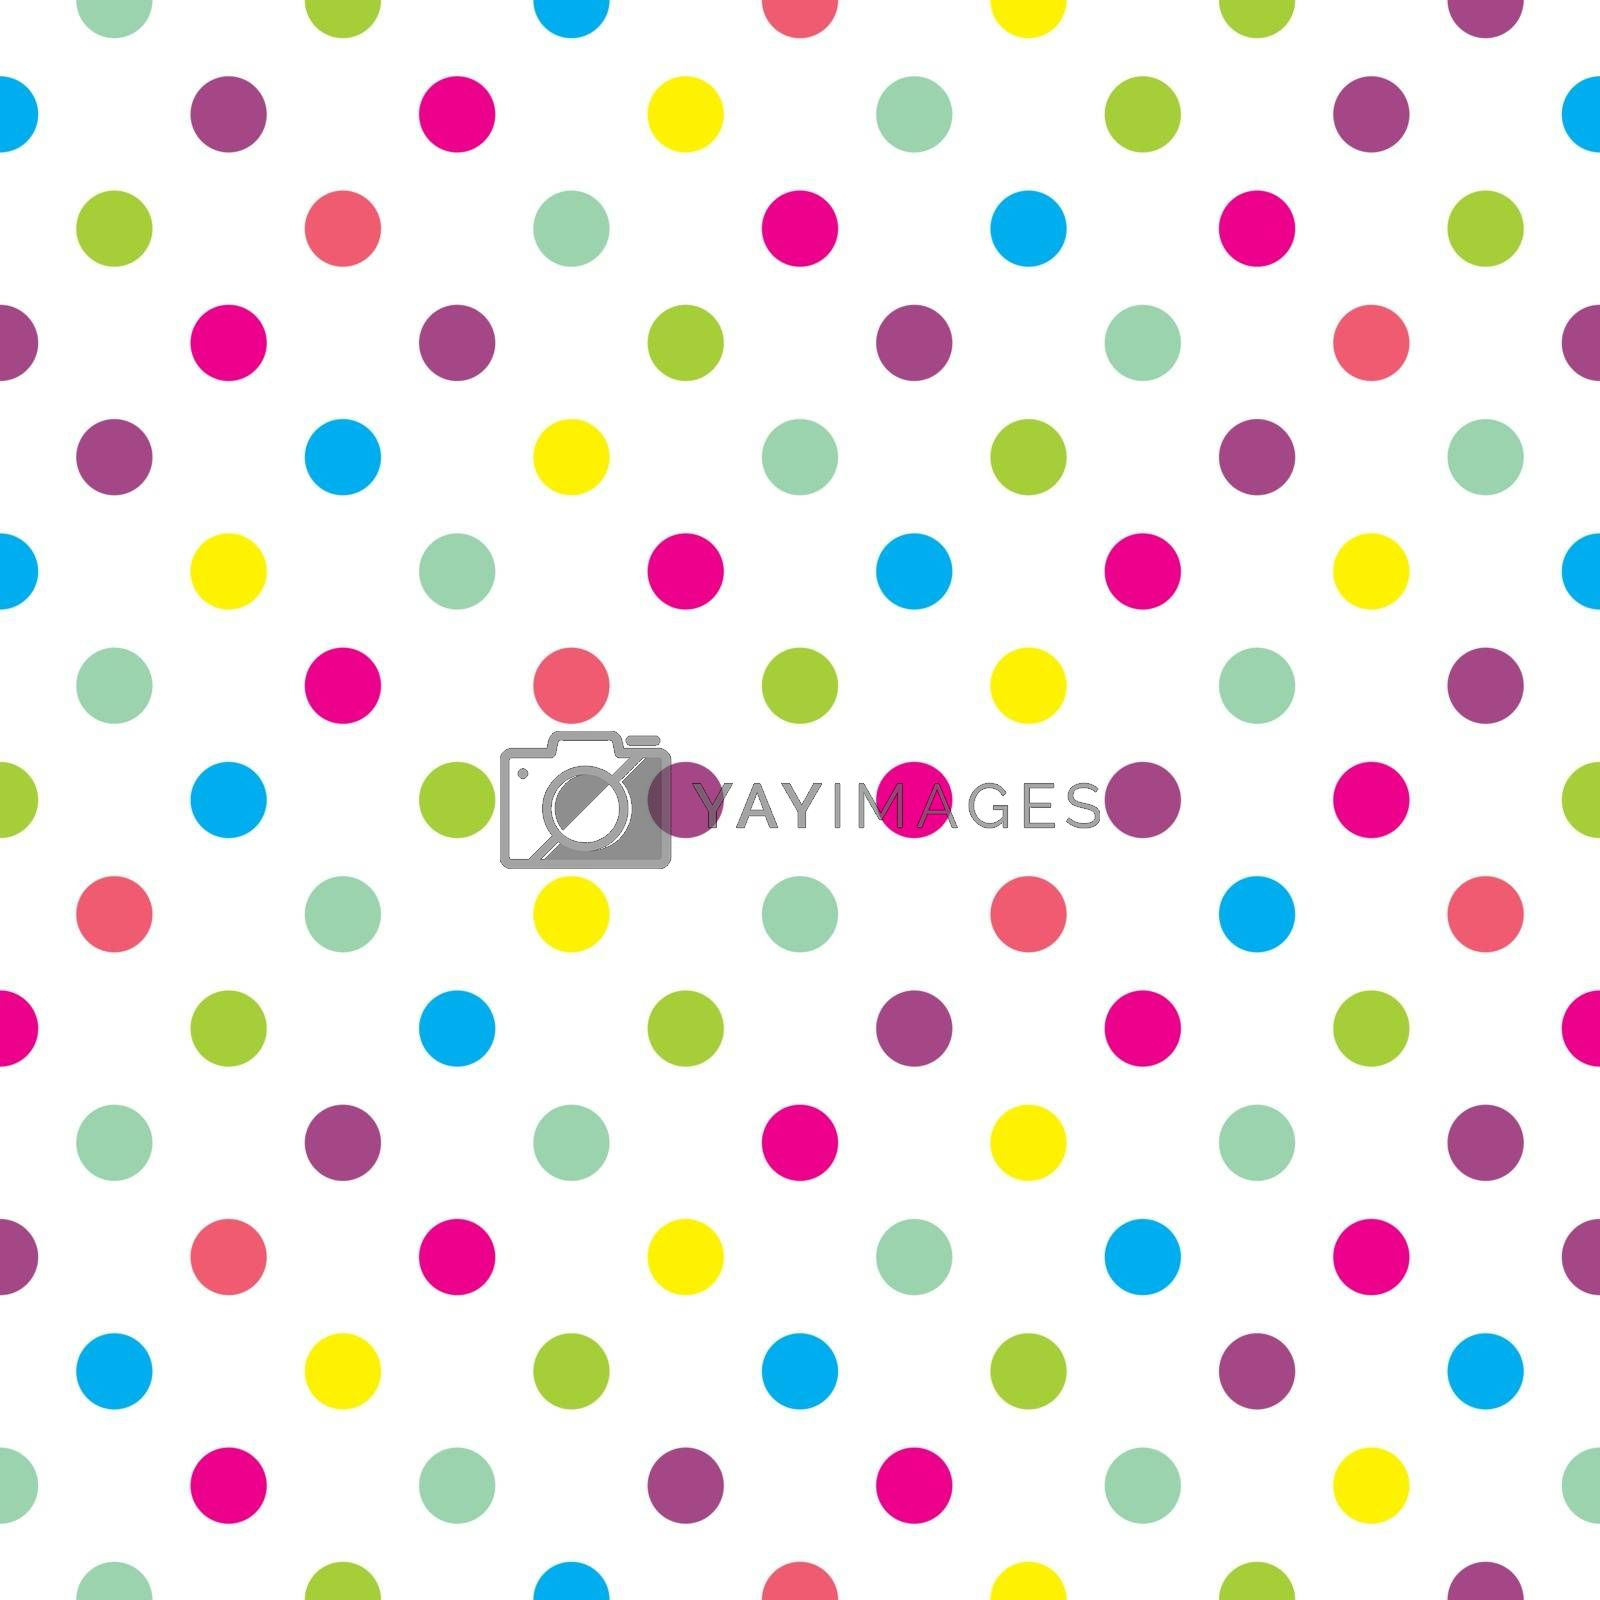 Seamless Pastel Pink Yellow Green Orange And Blue Polka Dots Vector Pattern Or Texture With White Background Royalty Free Stock Image Yayimages Royalty Free Stock Photos And Vectors,Backyard Baby Shower Decorations Outdoor